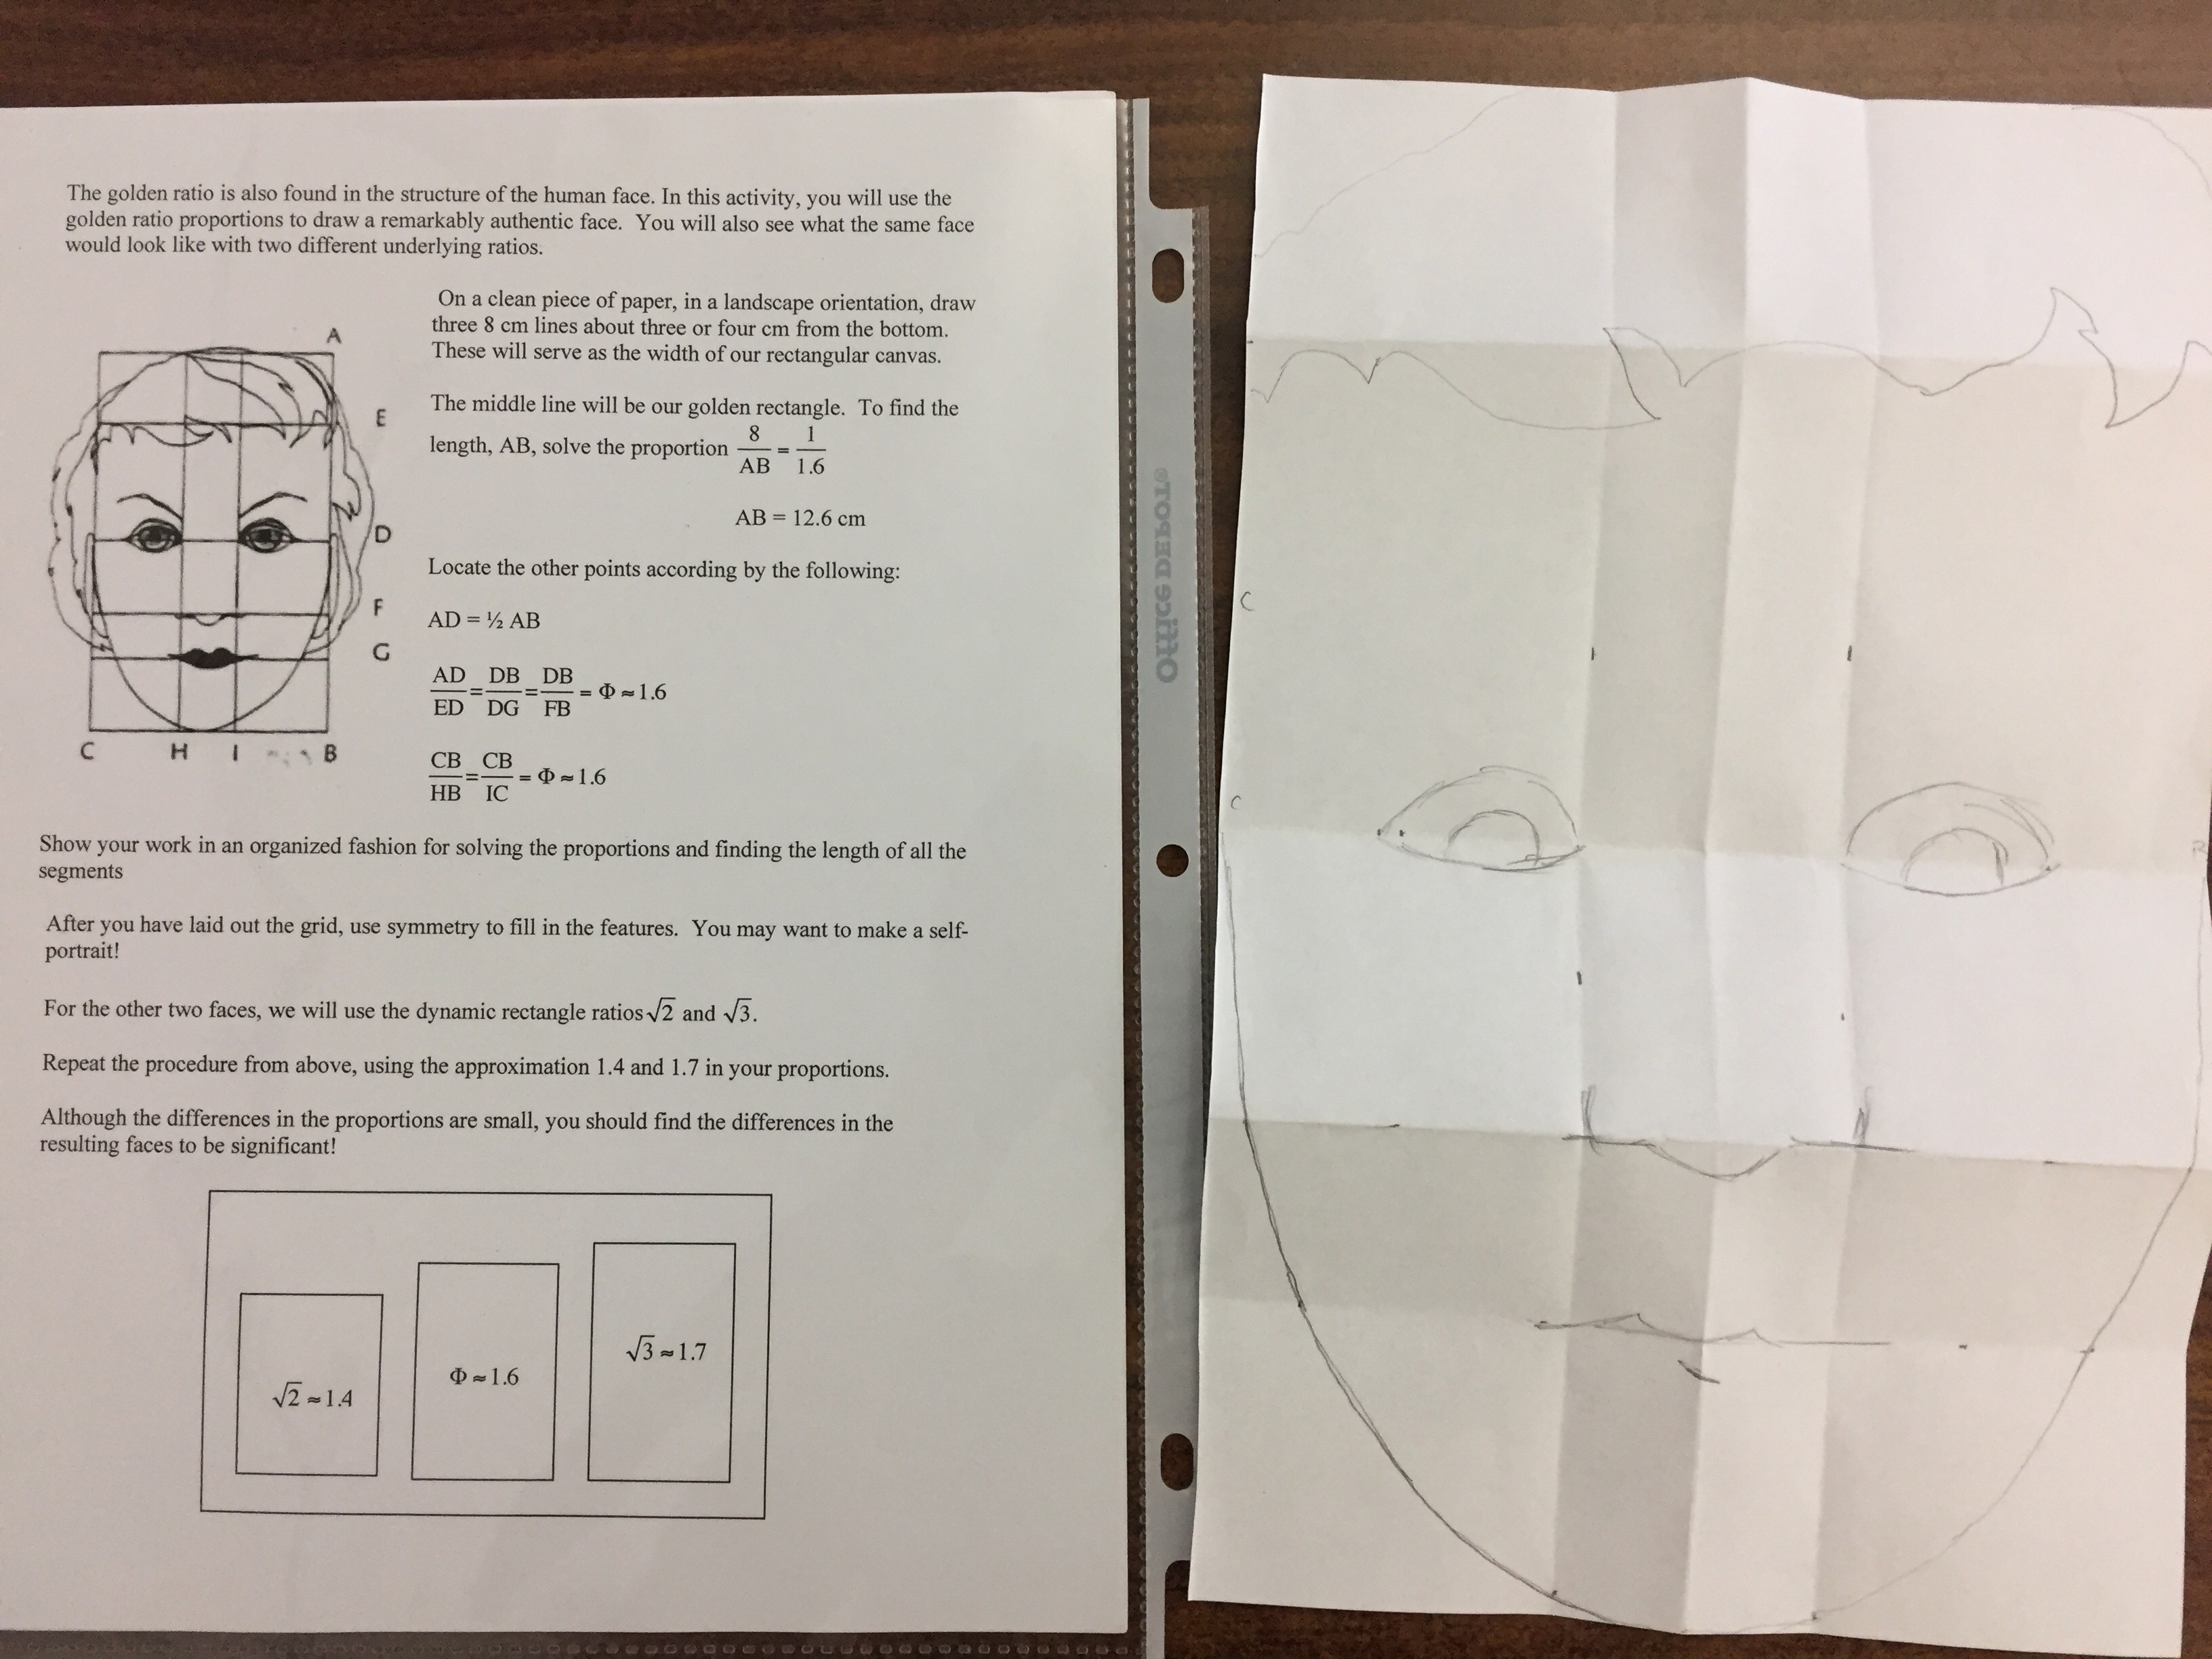 Directed Numbers Worksheet Pdf Mrmillermath  Differentiating Differentiation Child Credit Worksheet Excel with Worksheet Negative Exponents Pdf  Primary Rectangle The Rectangle That Encloses The Shape That Is A  Golden Rectangle Ive Done This Activity Before Exactly As The Worksheet  Lays Out Equation Worksheets For 7th Grade Pdf